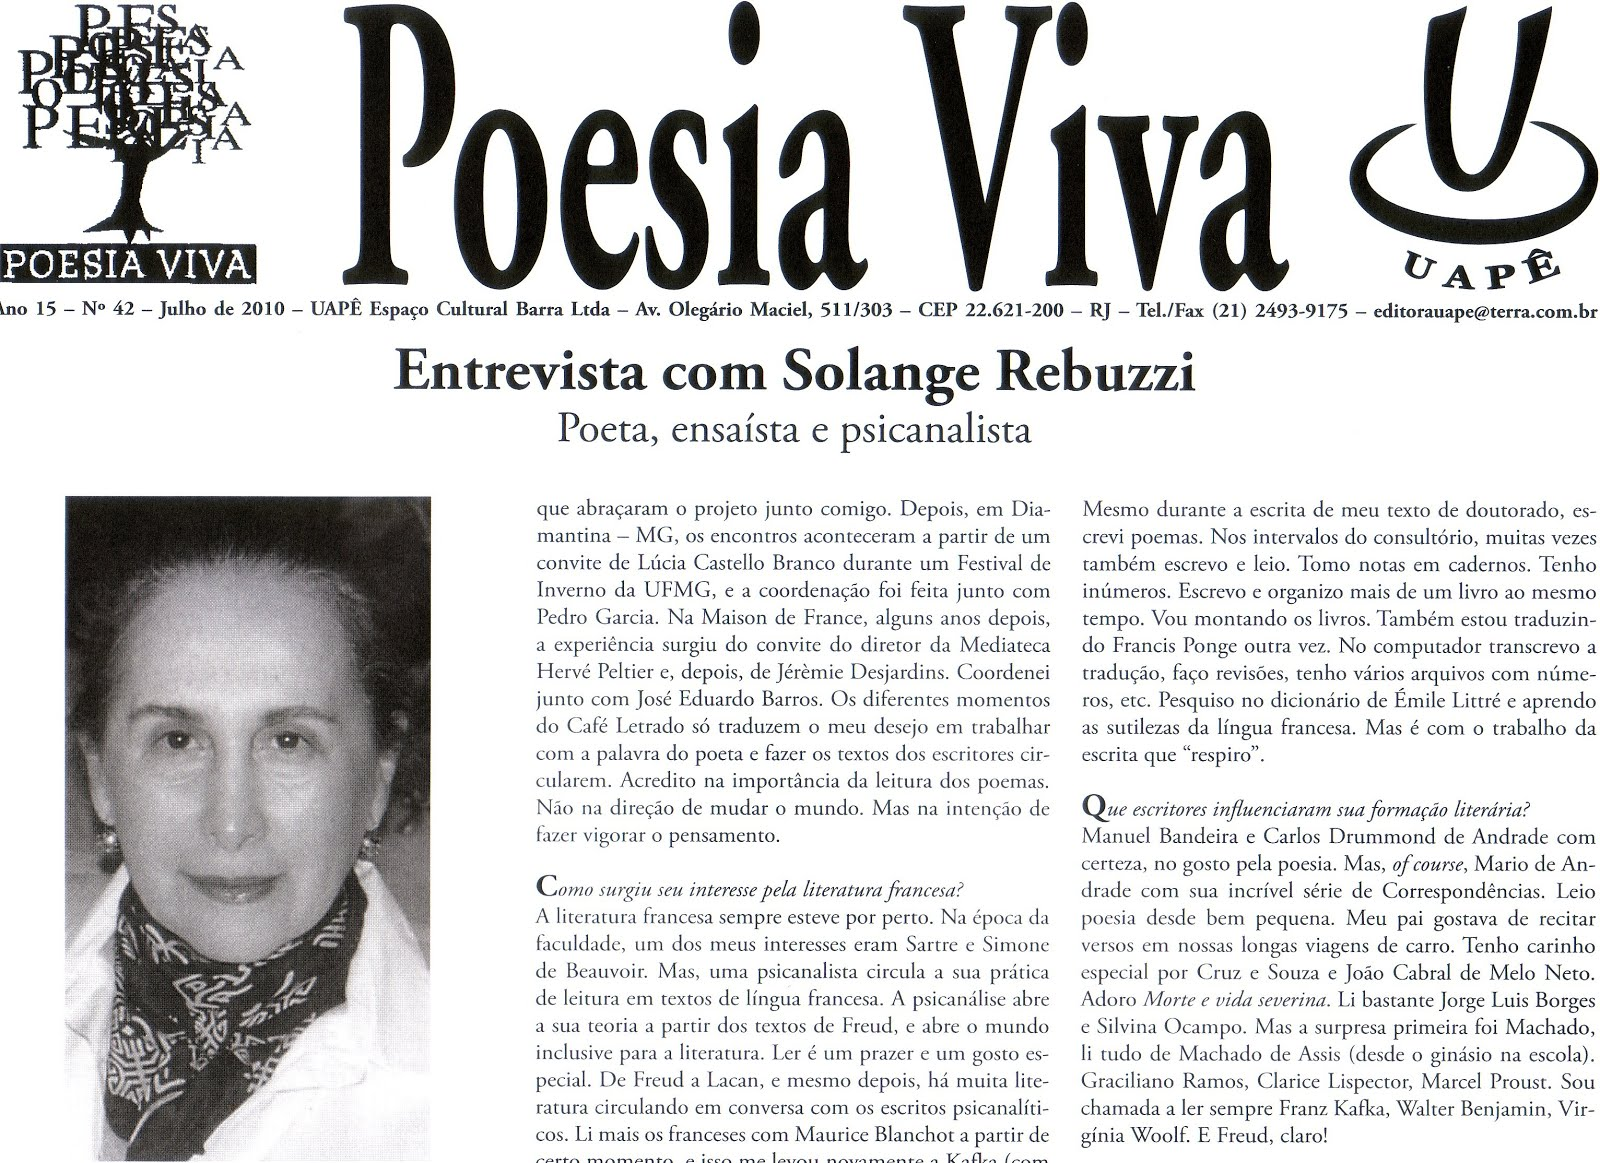 Jornal Poesia Viva